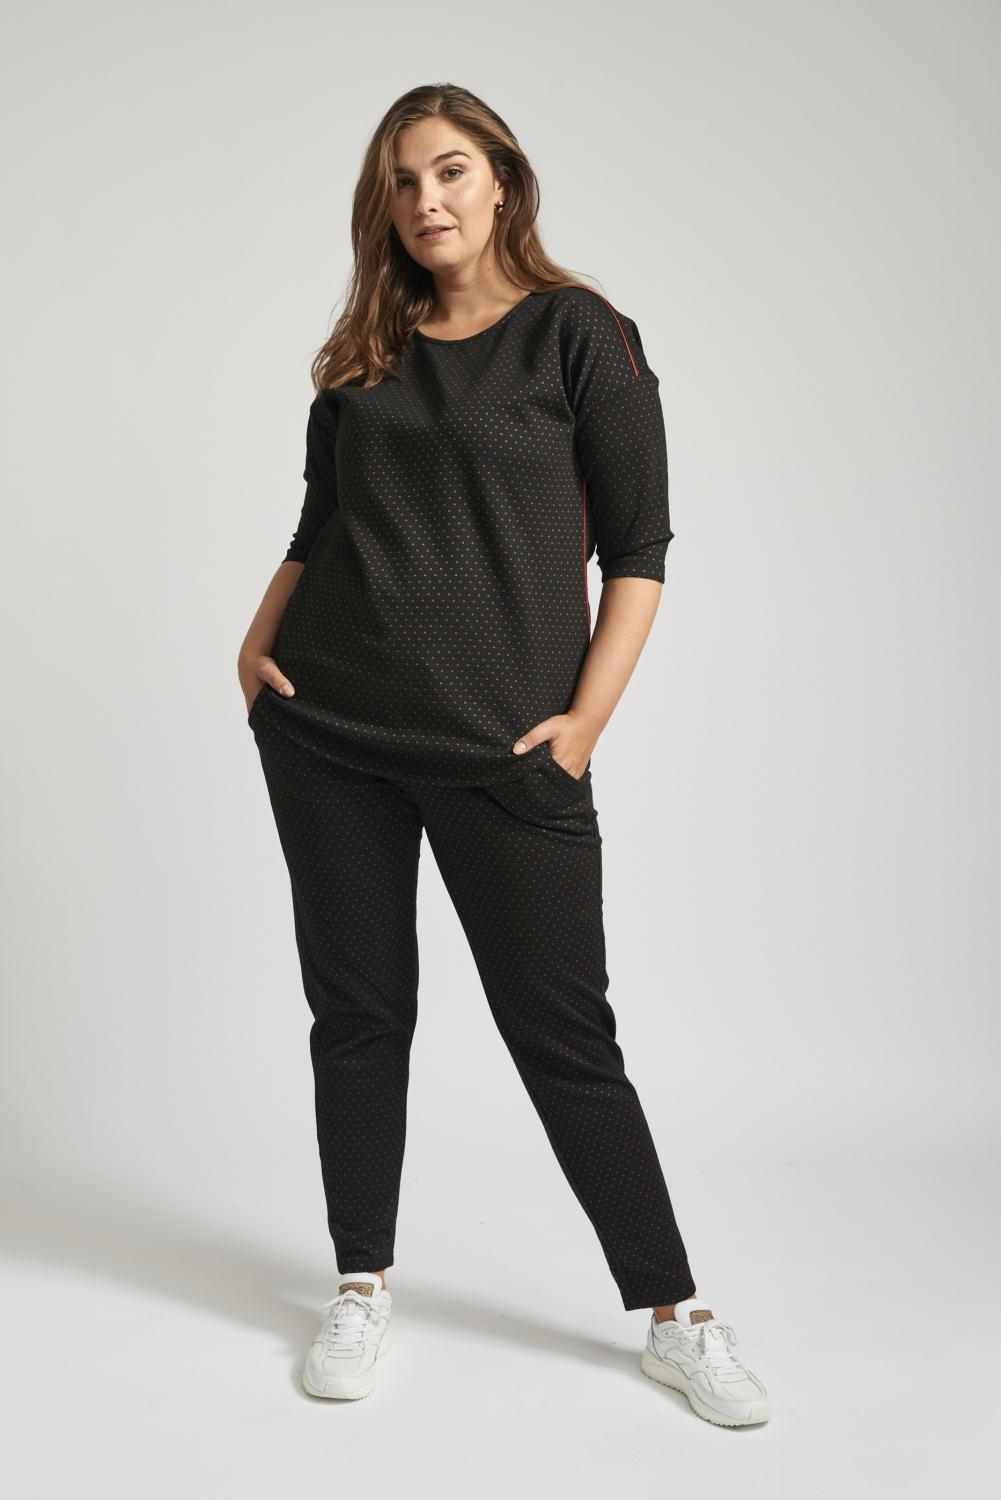 gallery-6636-for-AD4003